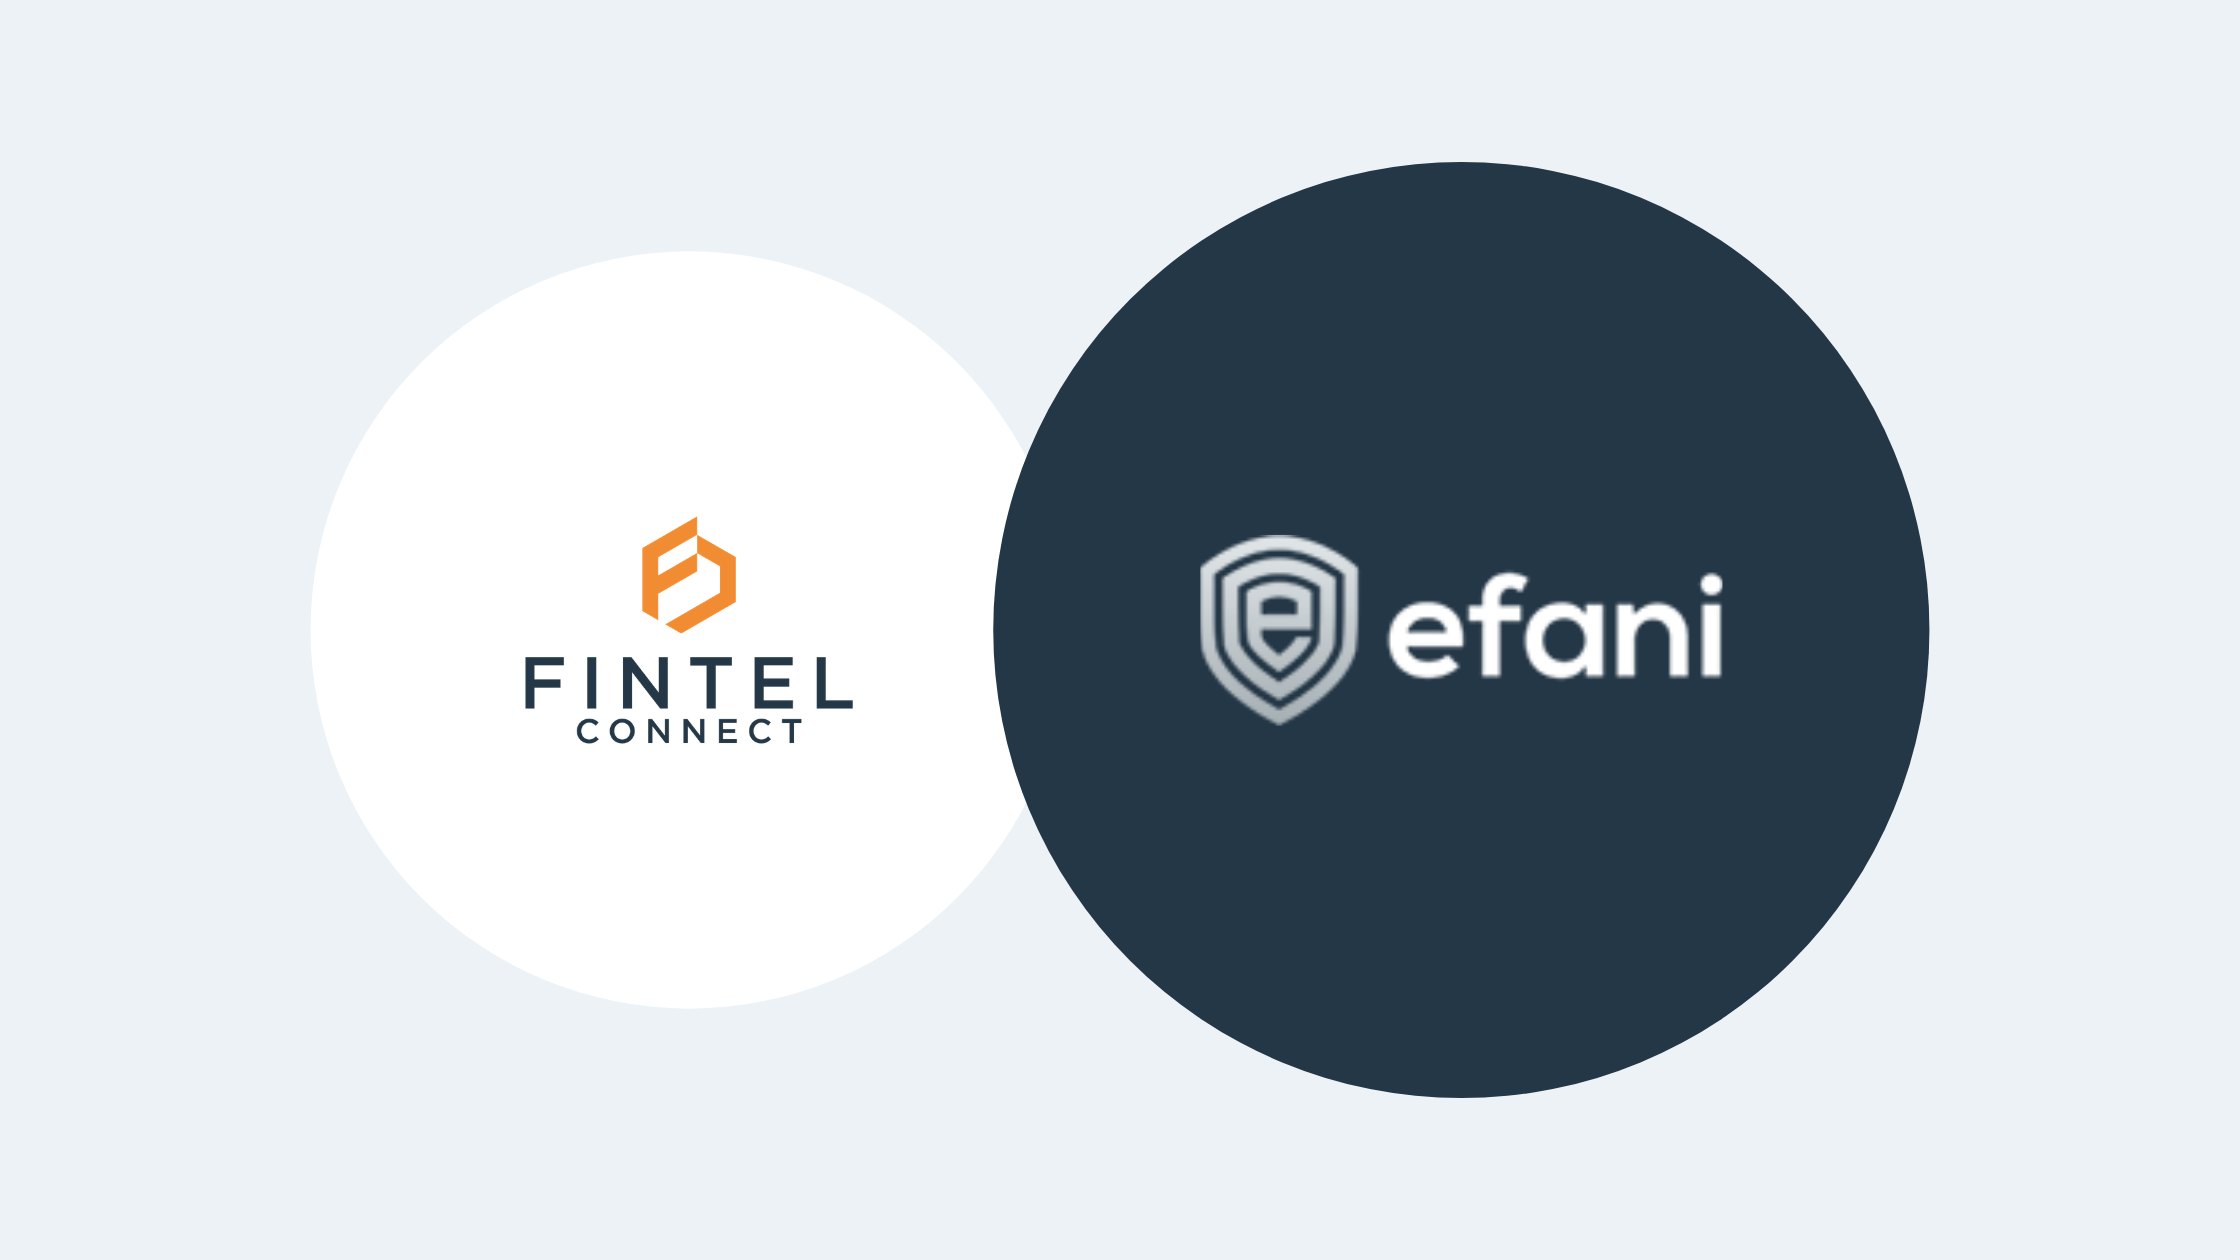 Efani Launches New Affiliate Program with Fintel Connect